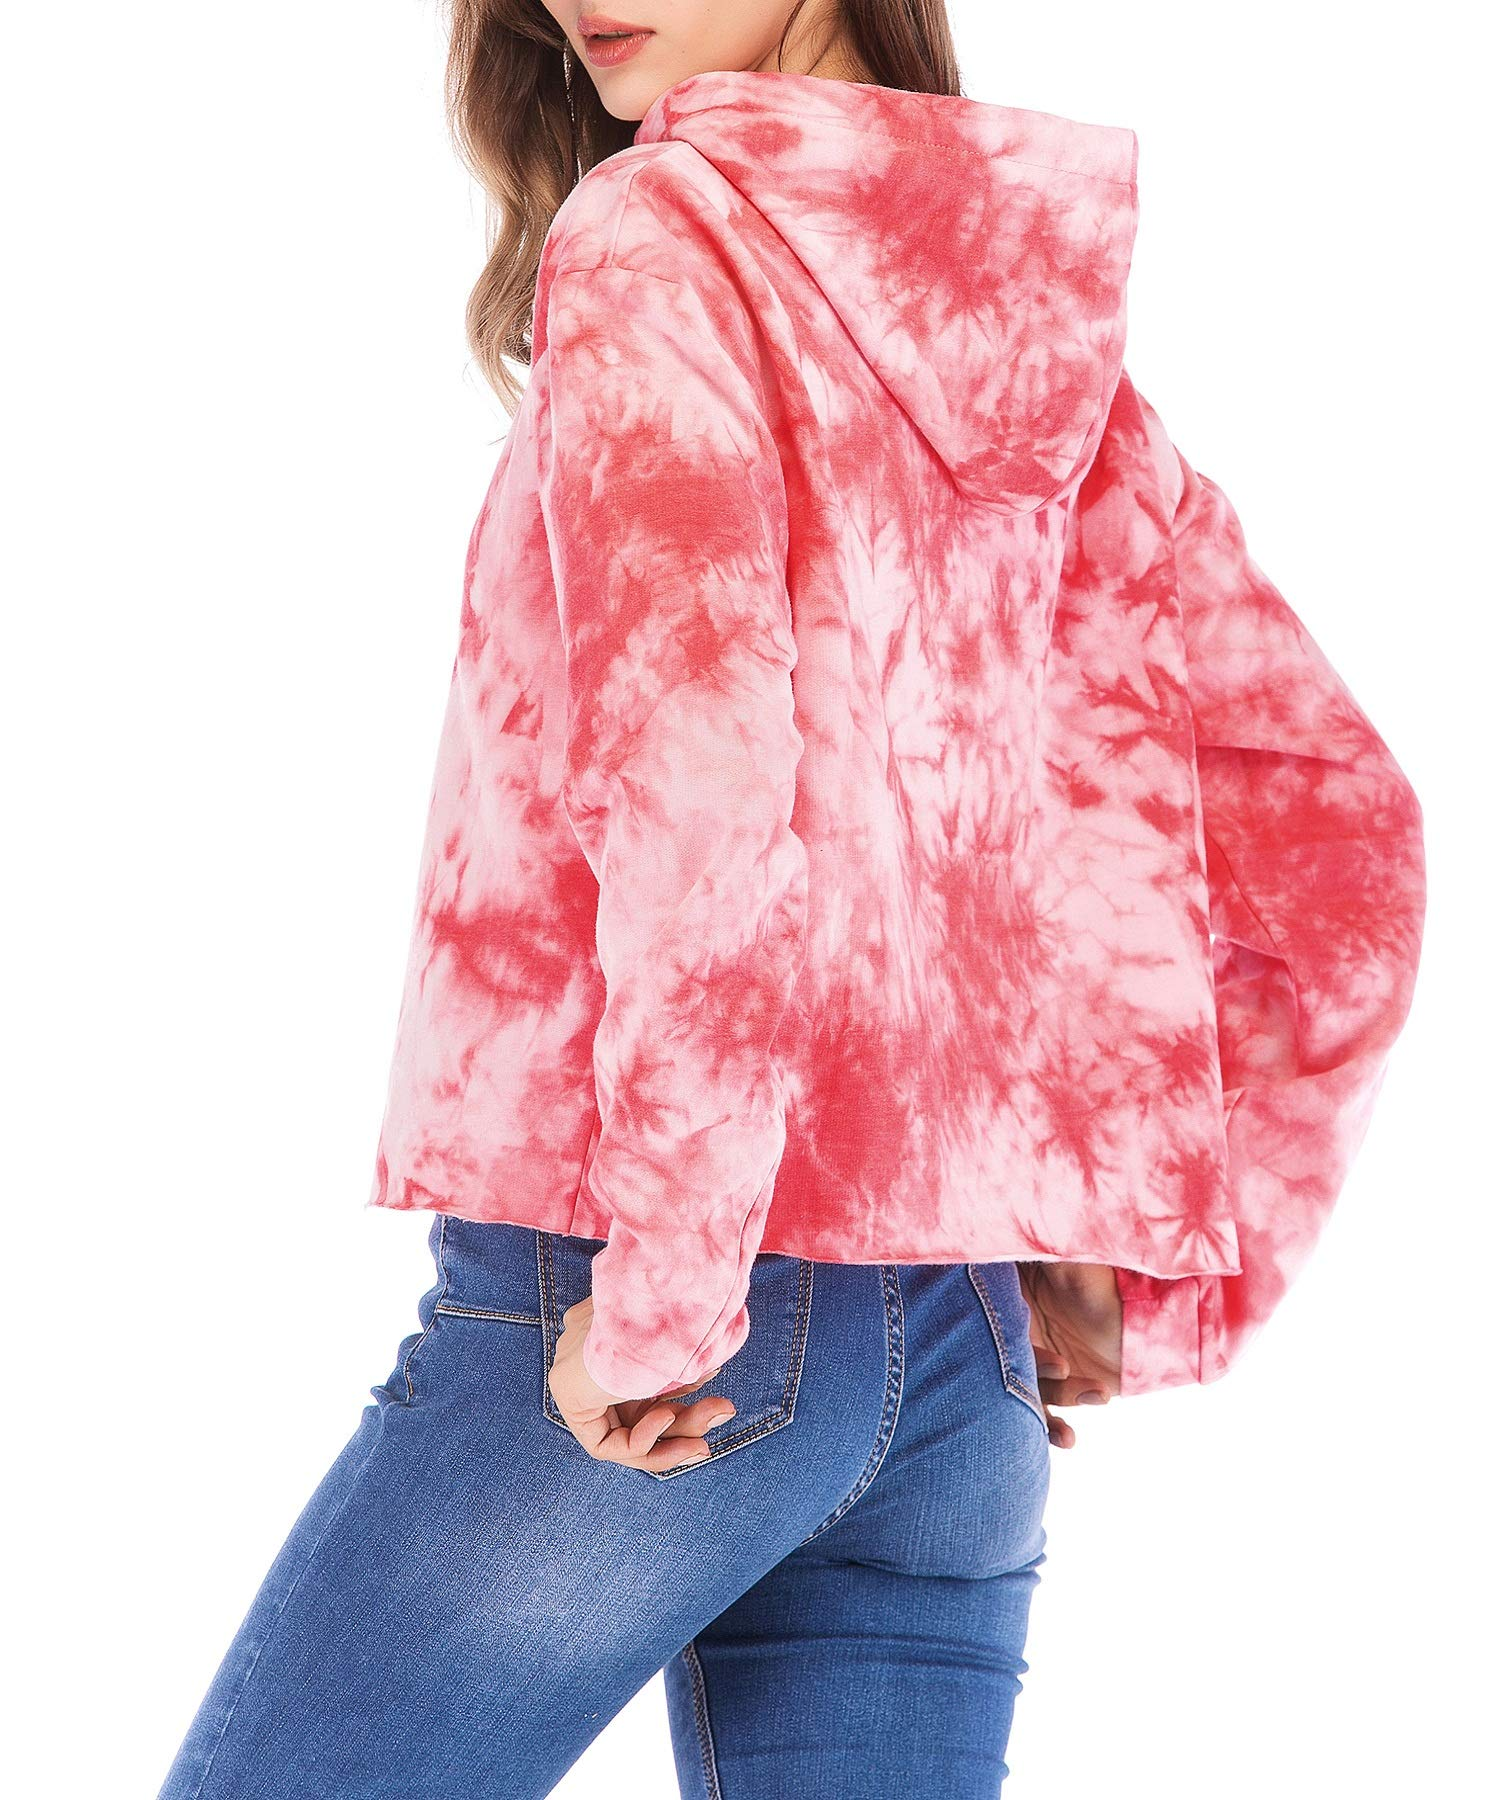 Eanklosco Womens Casual Long Sleeve Tie Dye Hoody (Pink, L)